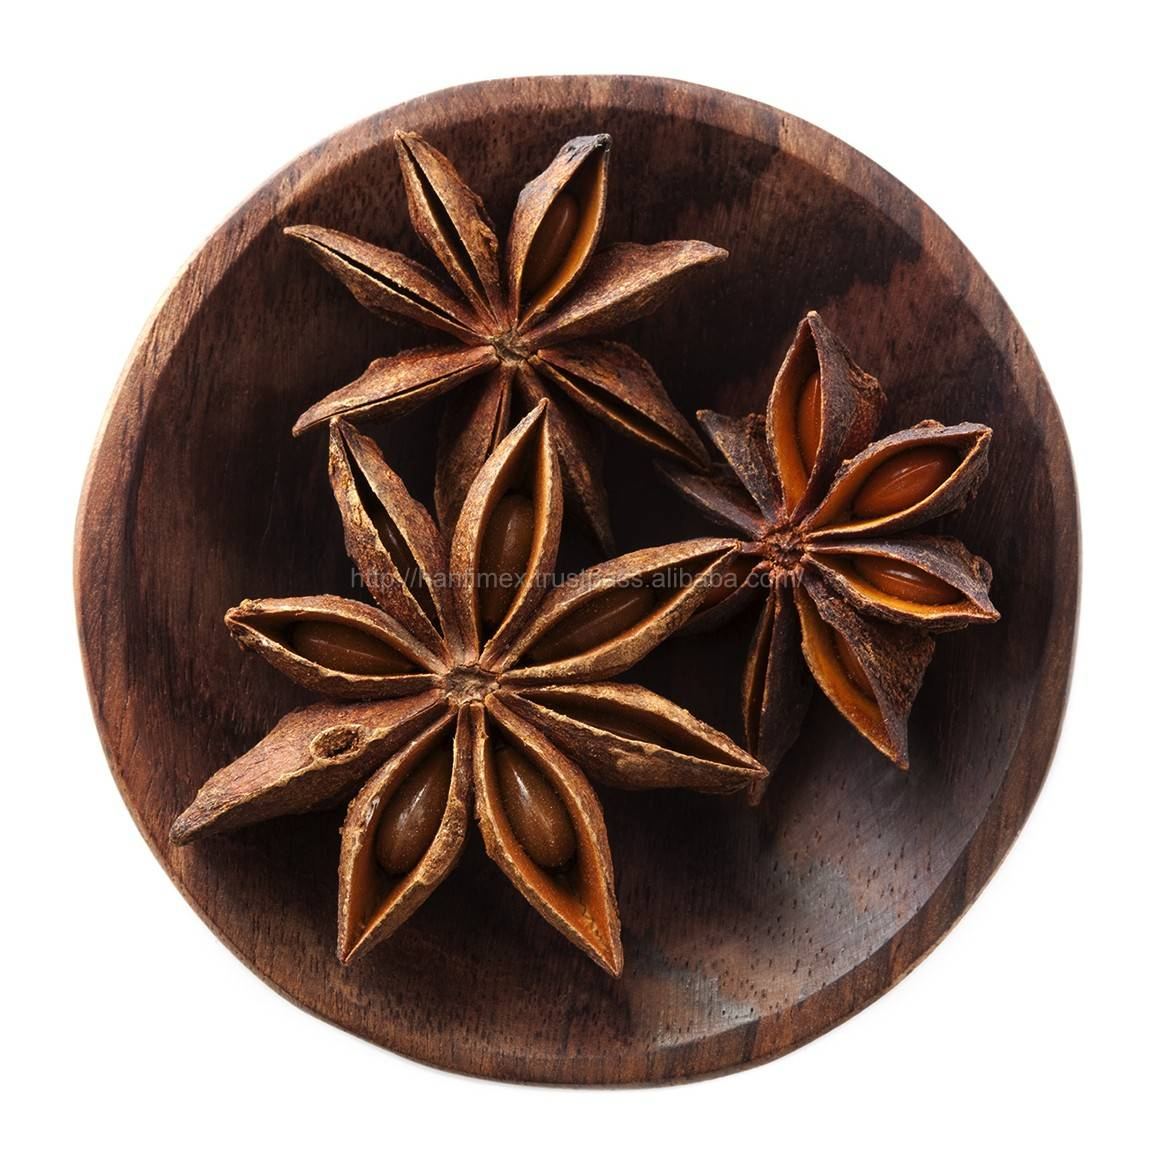 Best Price Vietnam STAR ANISE